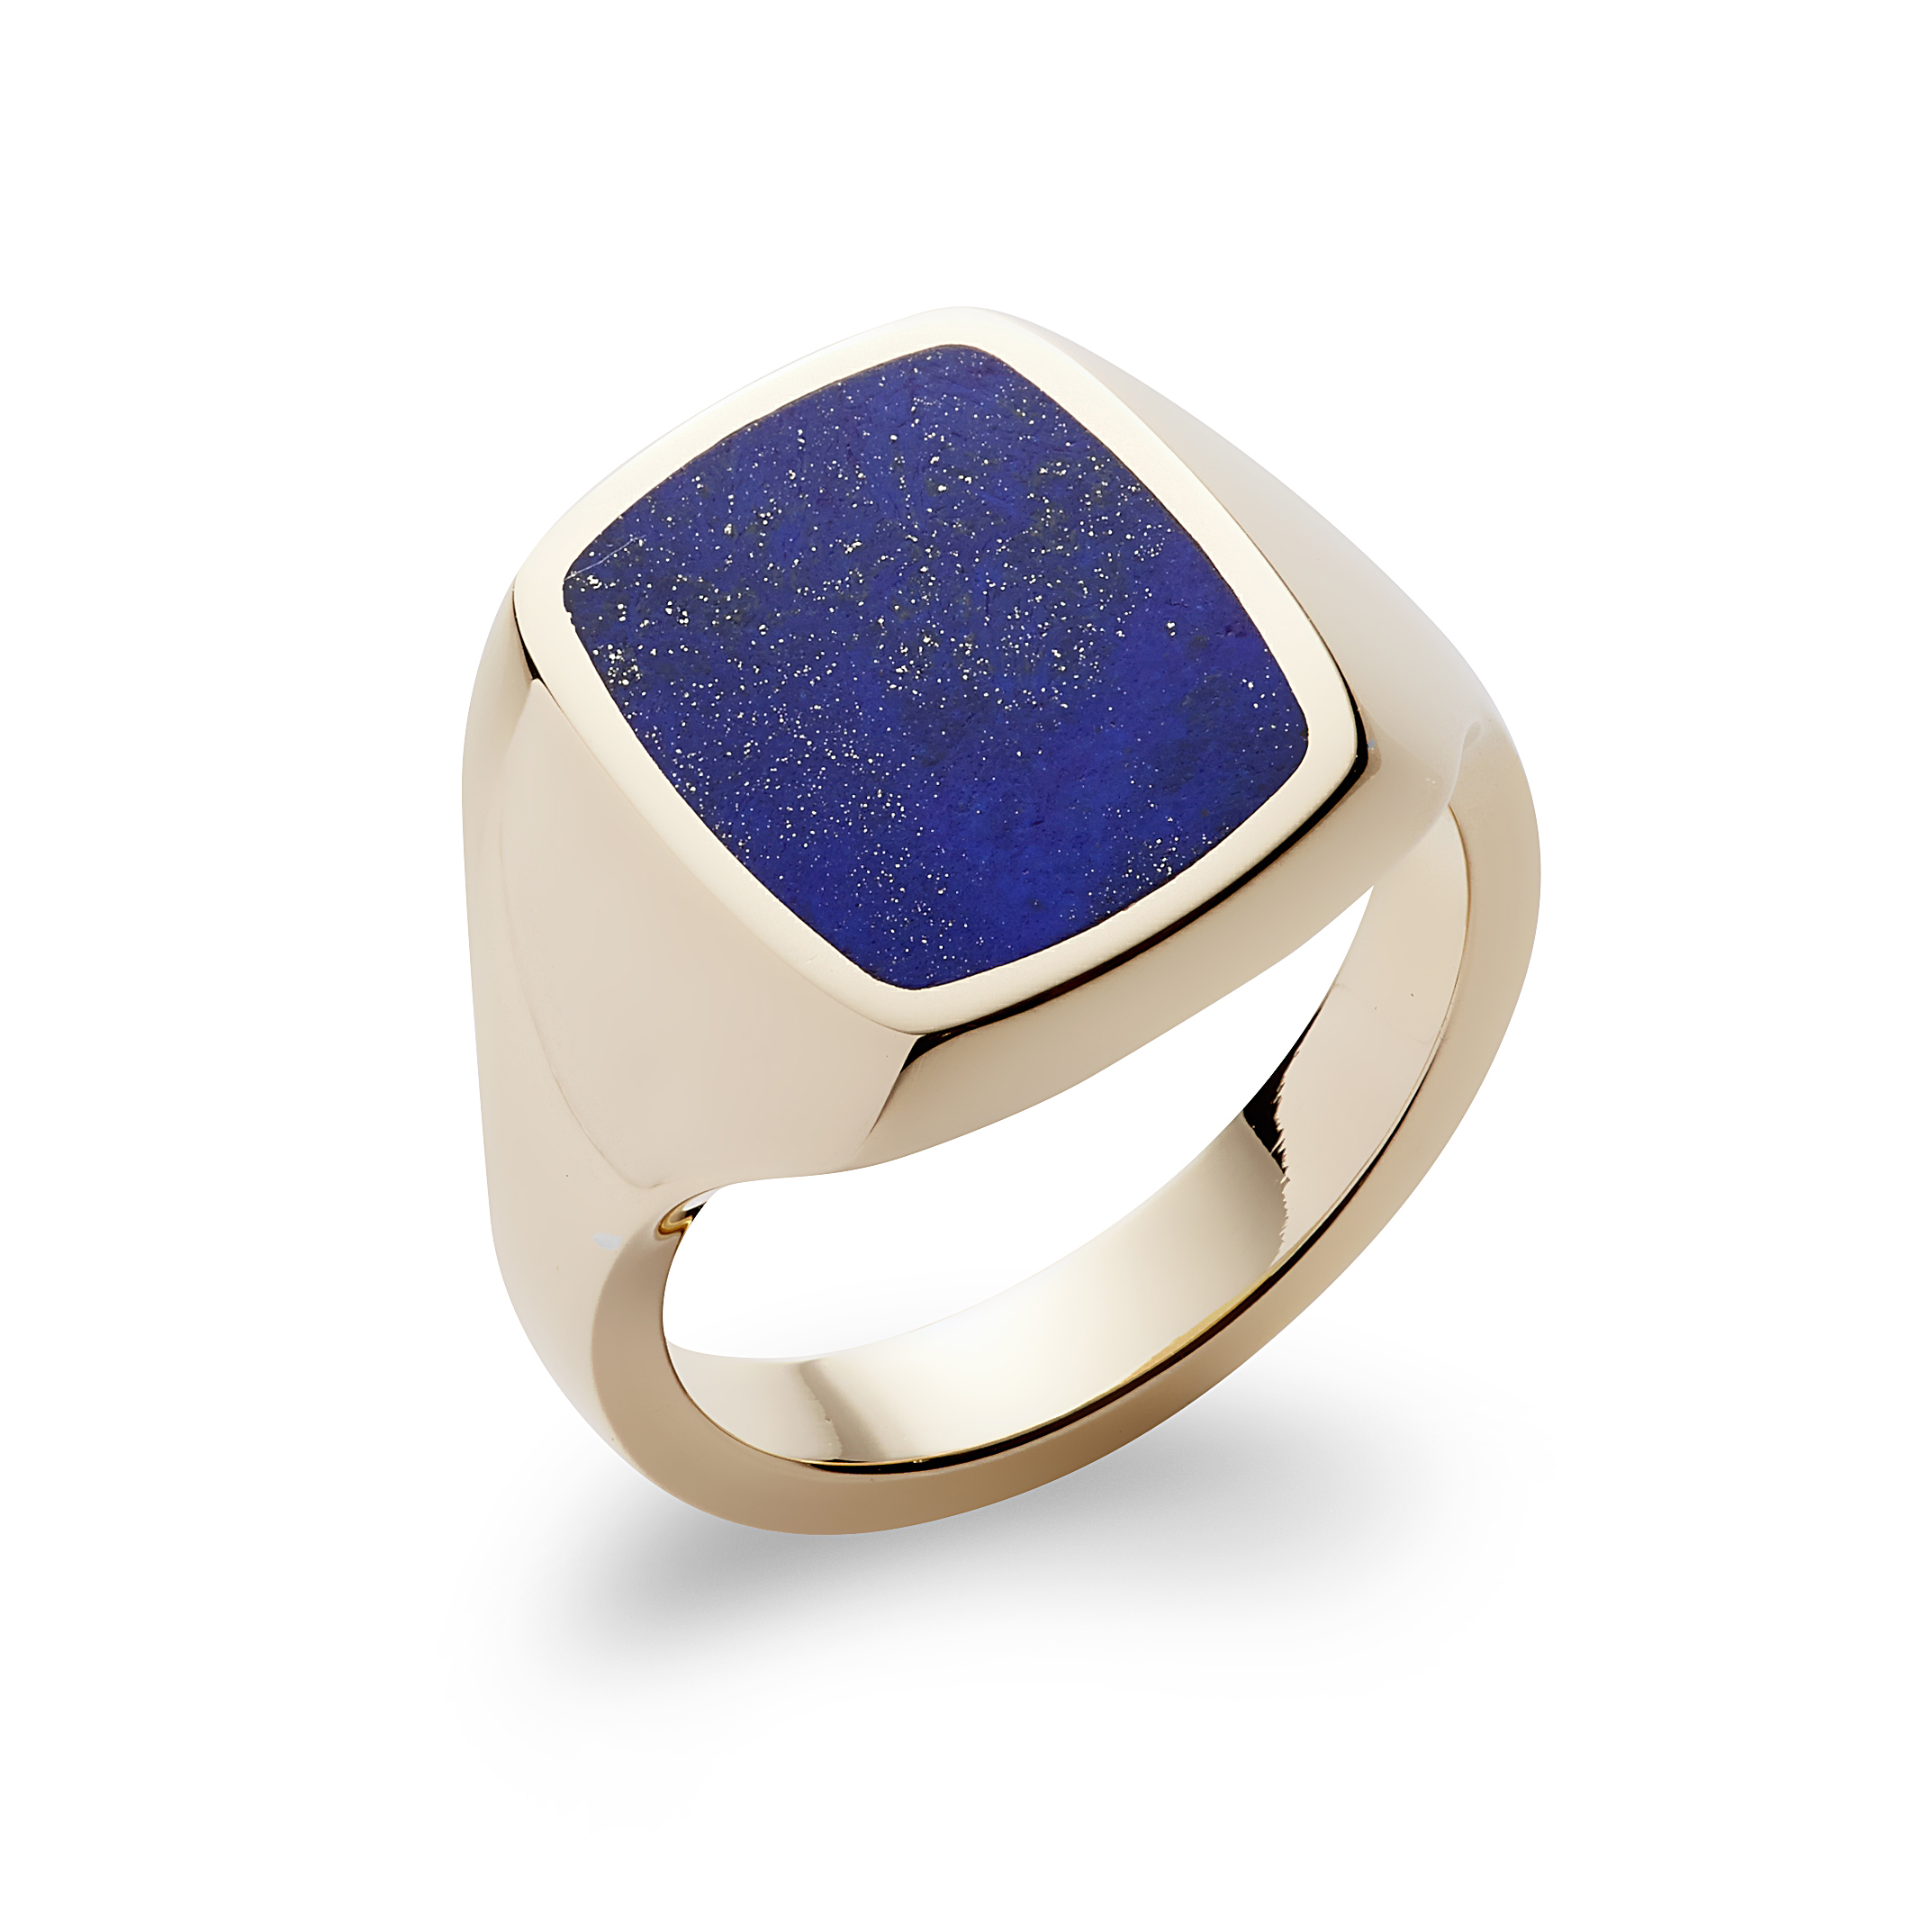 REBUS STONE SET CUSHION SIGNET RING, AVAILABLE AT REBUS